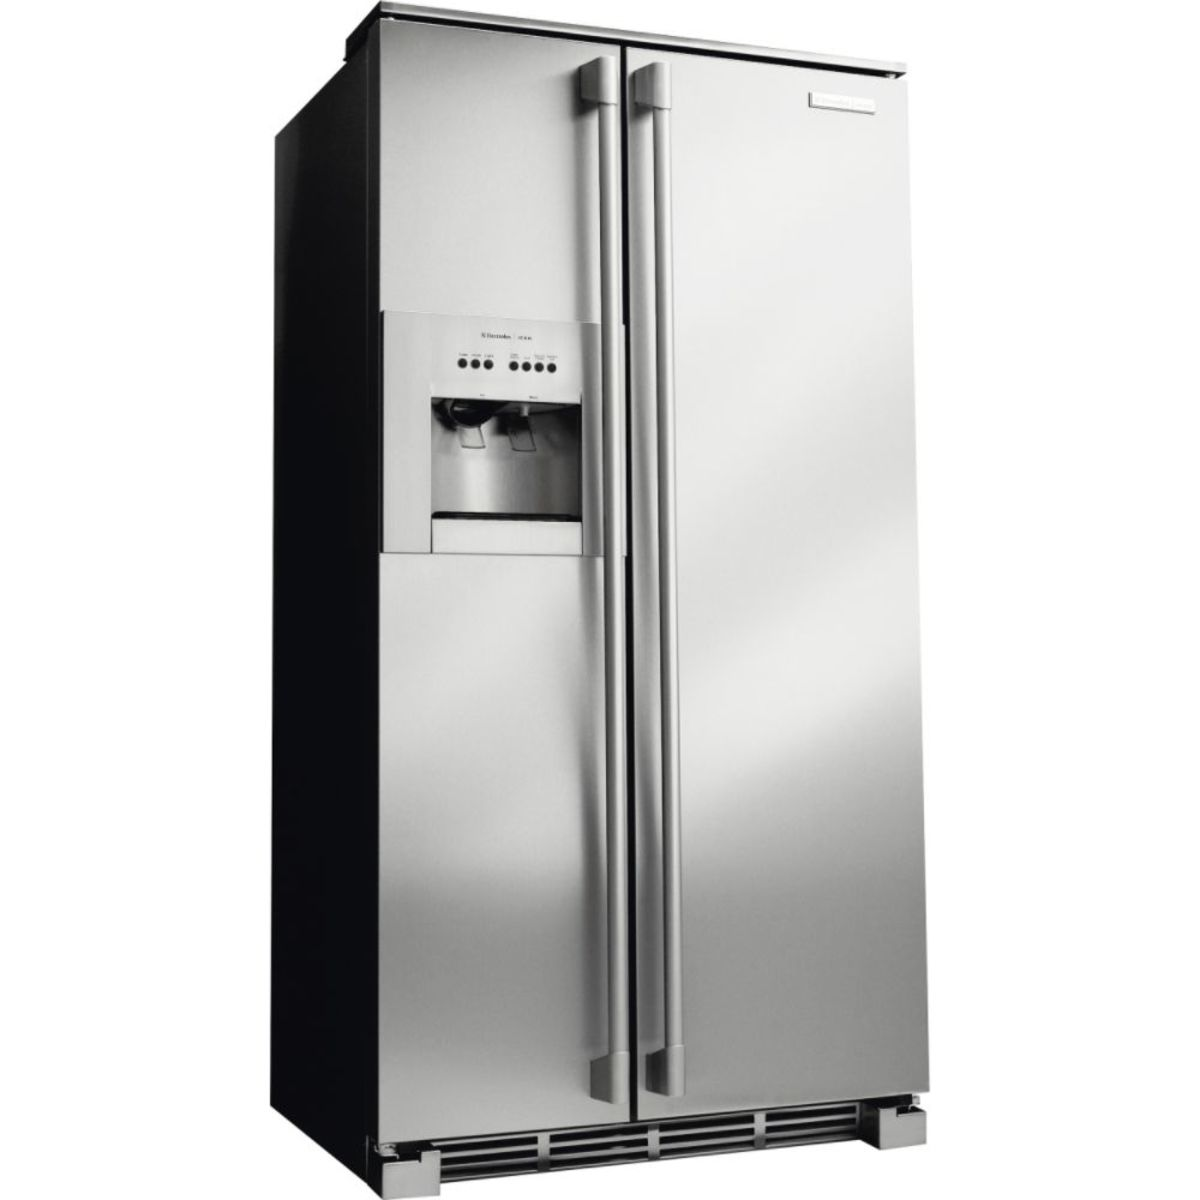 What is Electrolux Refrigerators